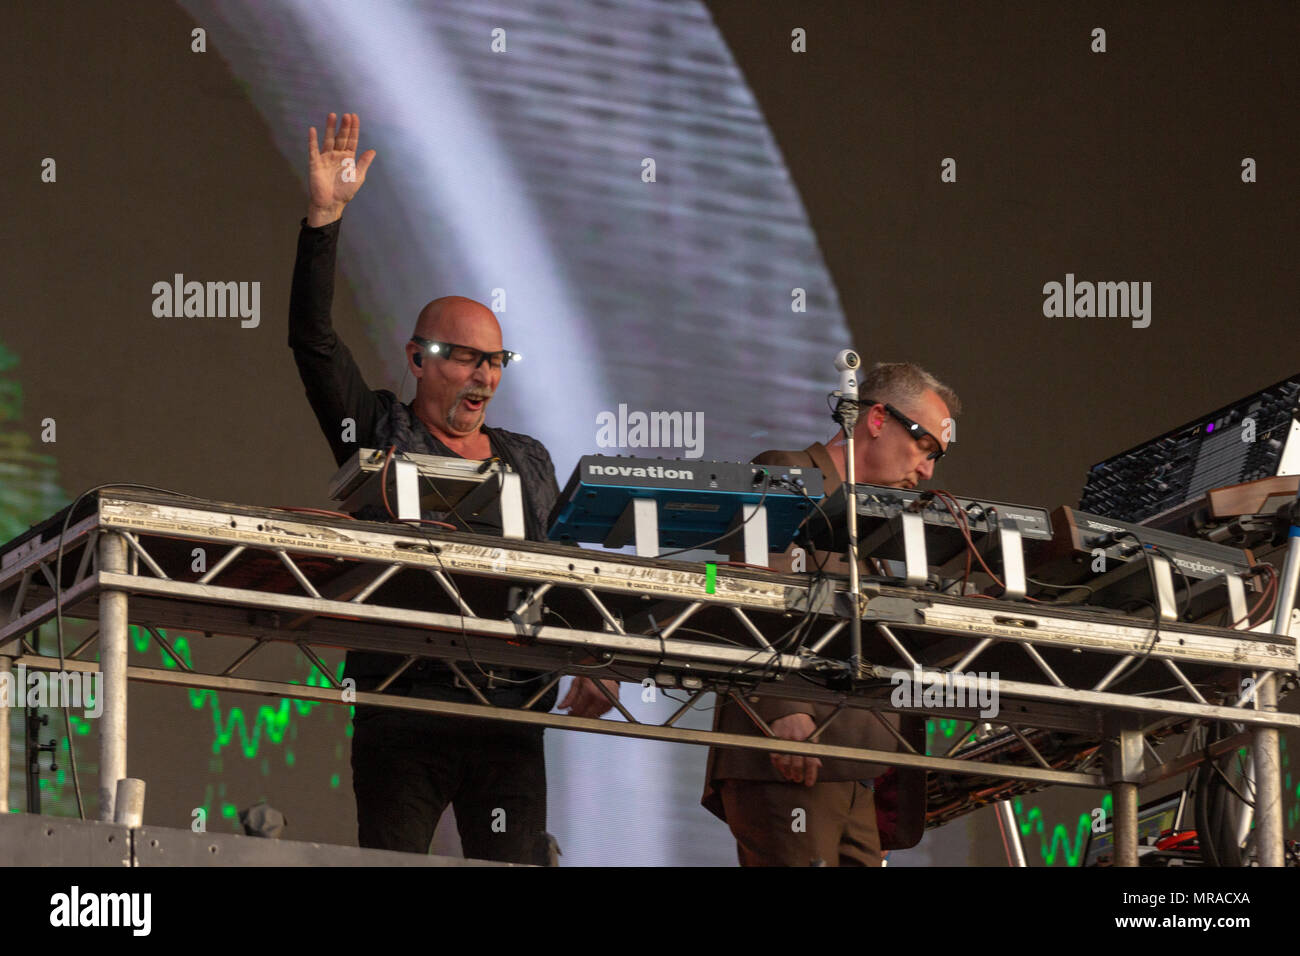 London, UK , 25 May 2018. Orbital are an English electronic dance music duo from Sevenoaks, Kent, England consisting of brothers Phil and Paul Hartnoll. The band's name is taken from Greater London's orbital motorway, the M25, which was central to the early rave scene and party network in the South East during the early days of acid house. In addition, the cover art on three of their albums shows stylised atomic orbitals. Credit: Darron Mark/Alamy Live News - Stock Image